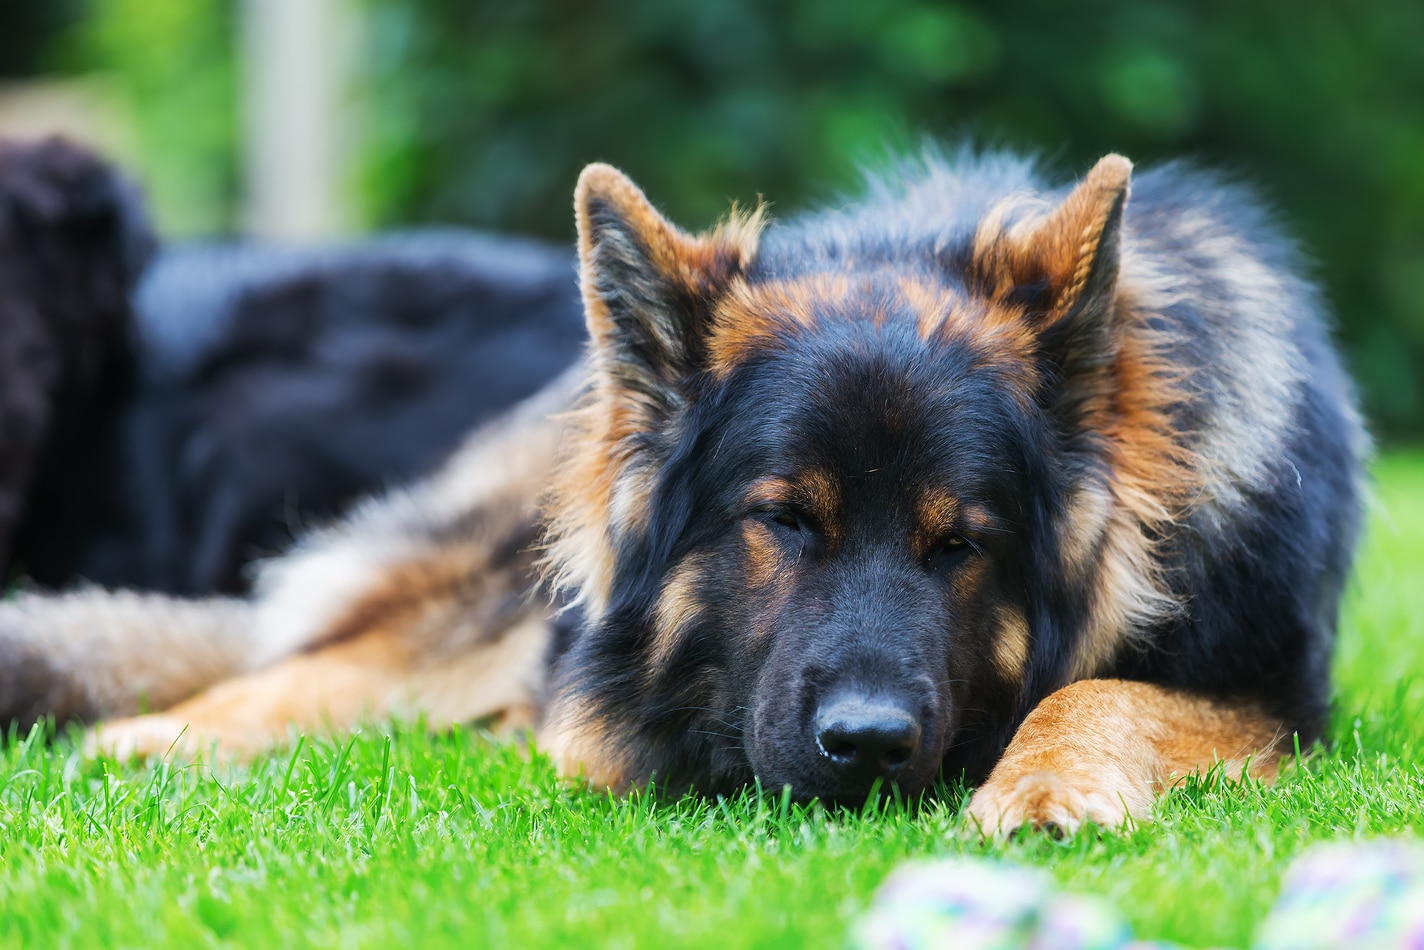 Long-haired black German shepherd lying in the grass.